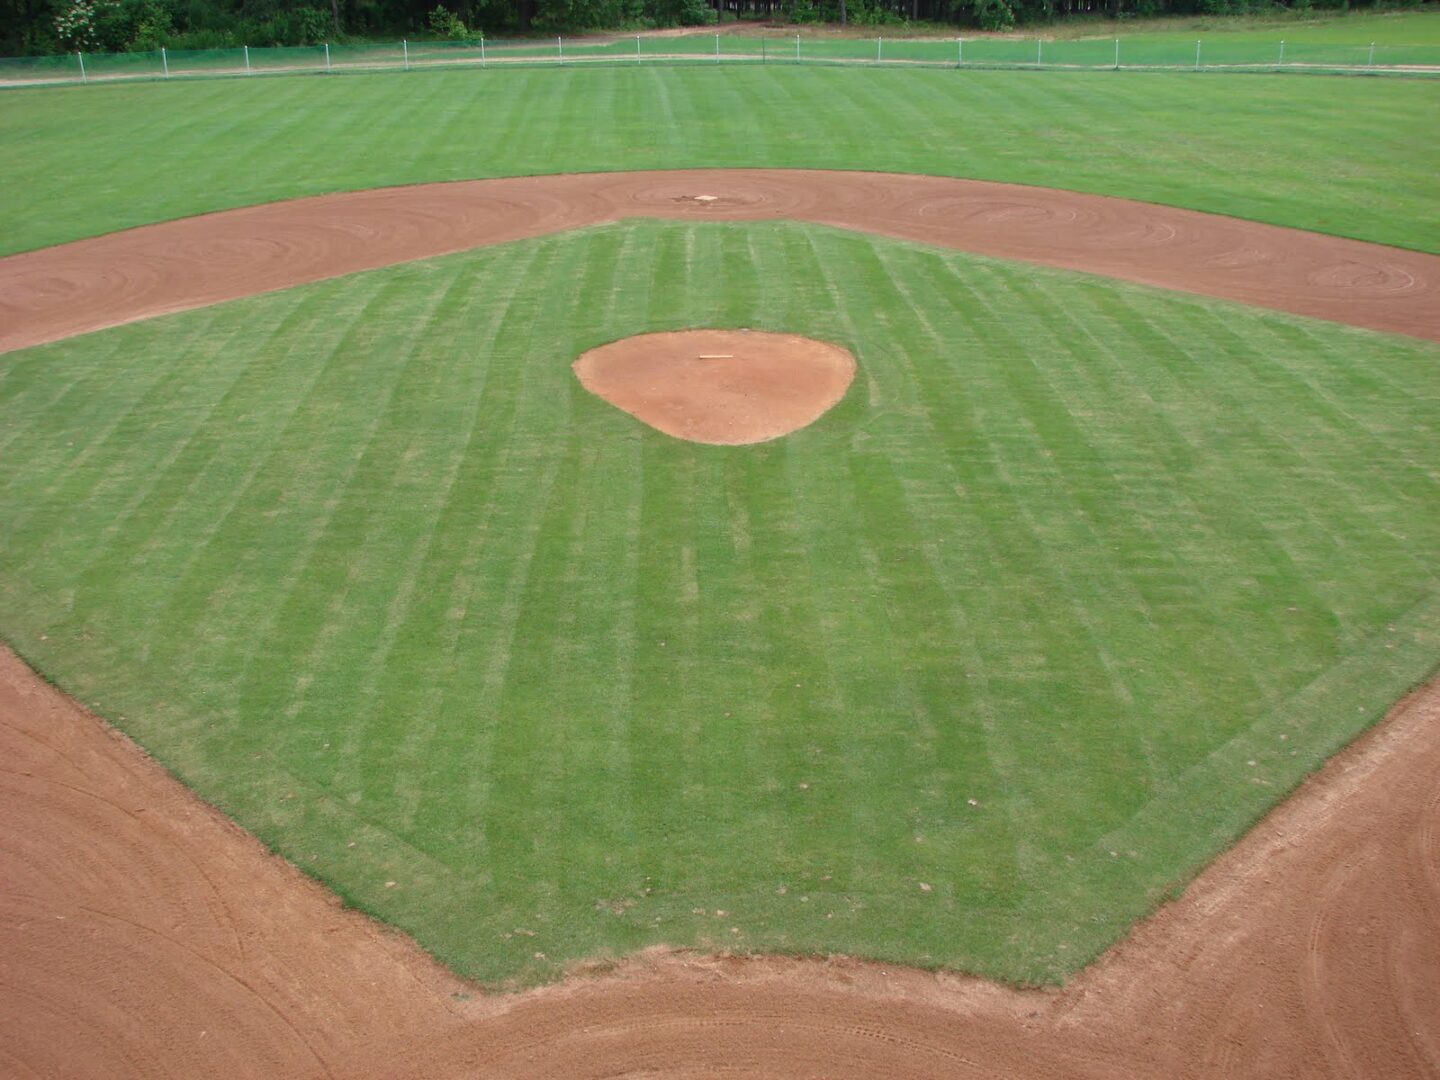 Little League pool results from July 9 and 10